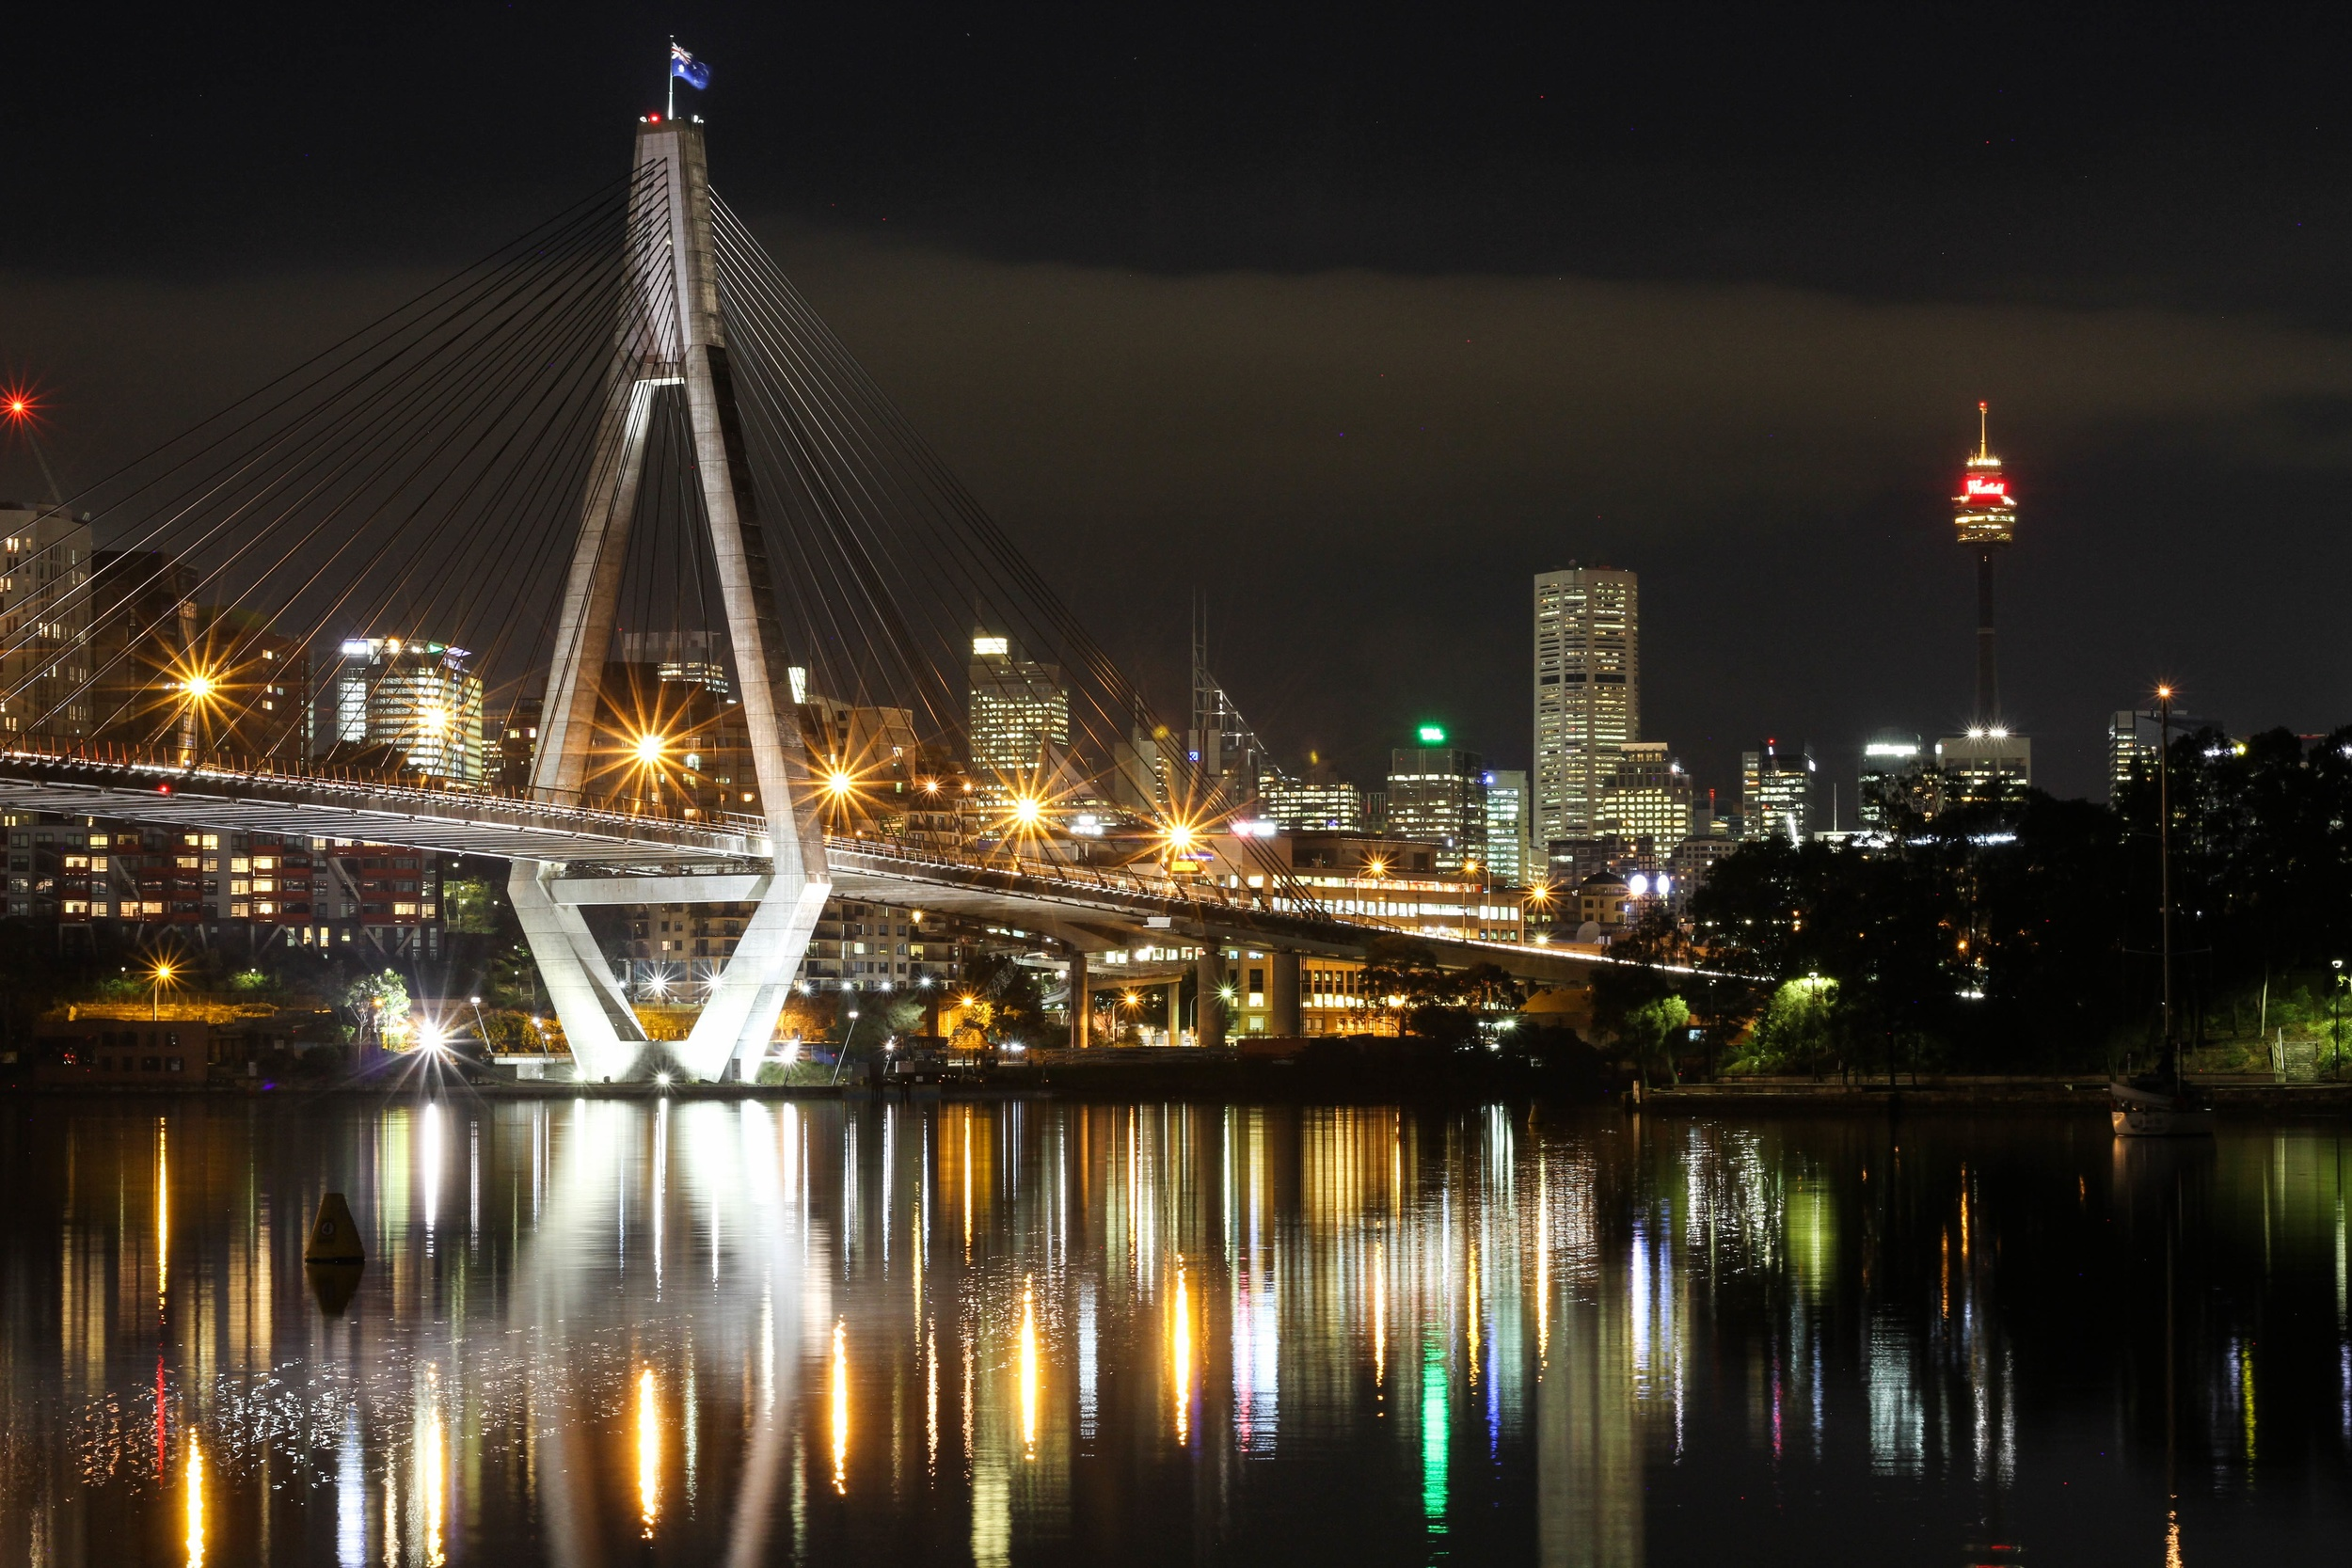 Anzac bridge at night